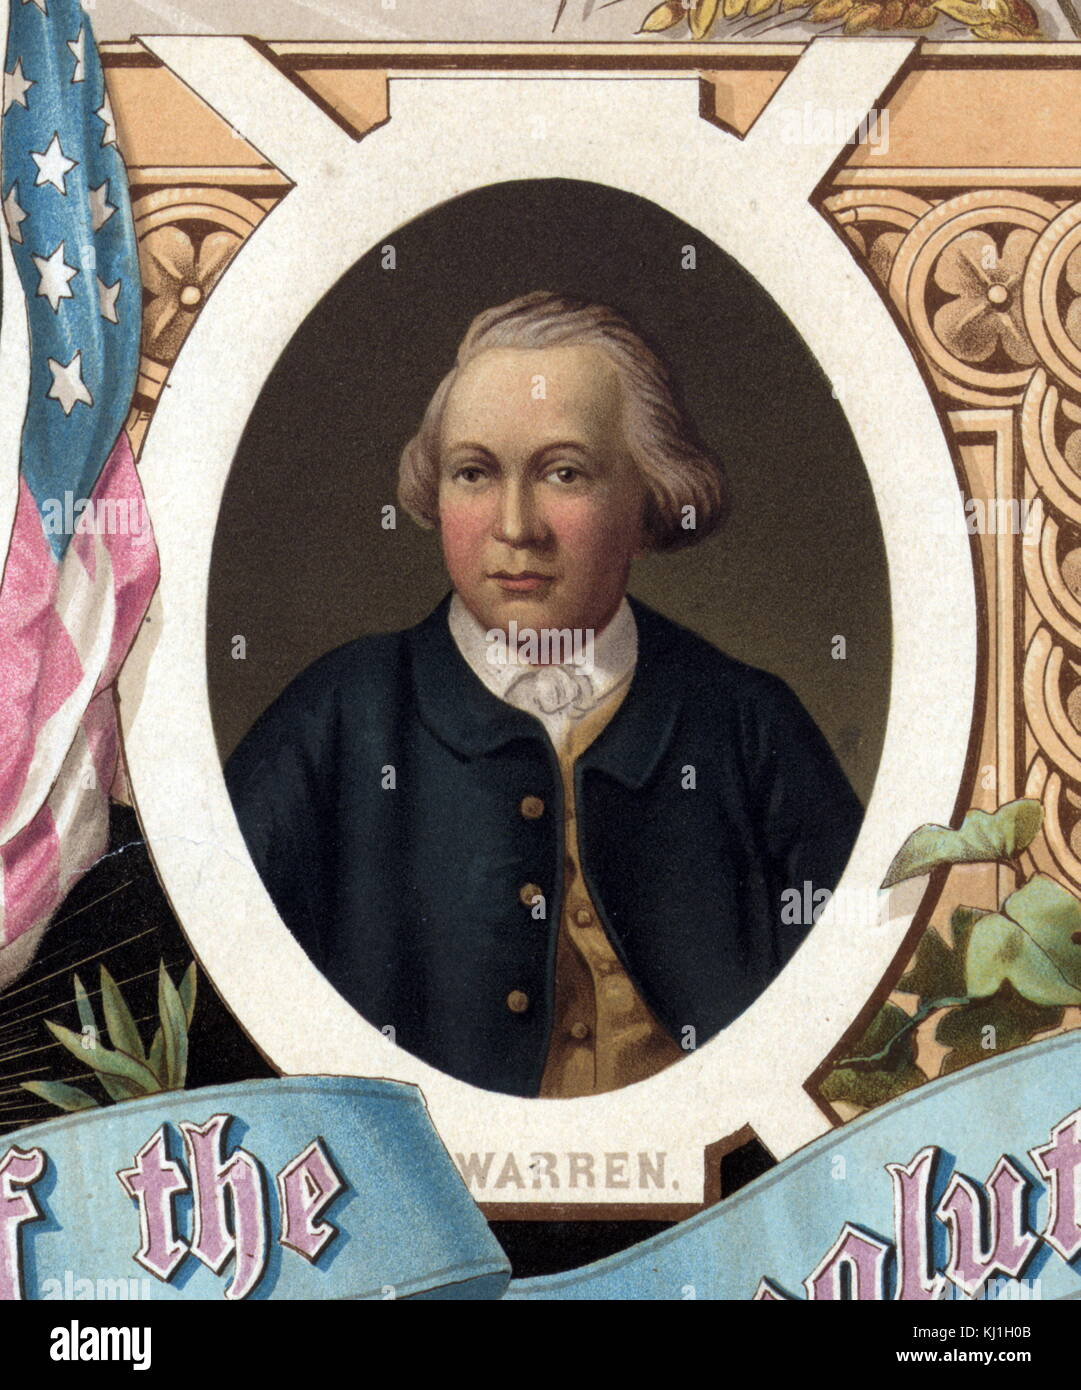 a biography of joseph warren an american doctor and patriot